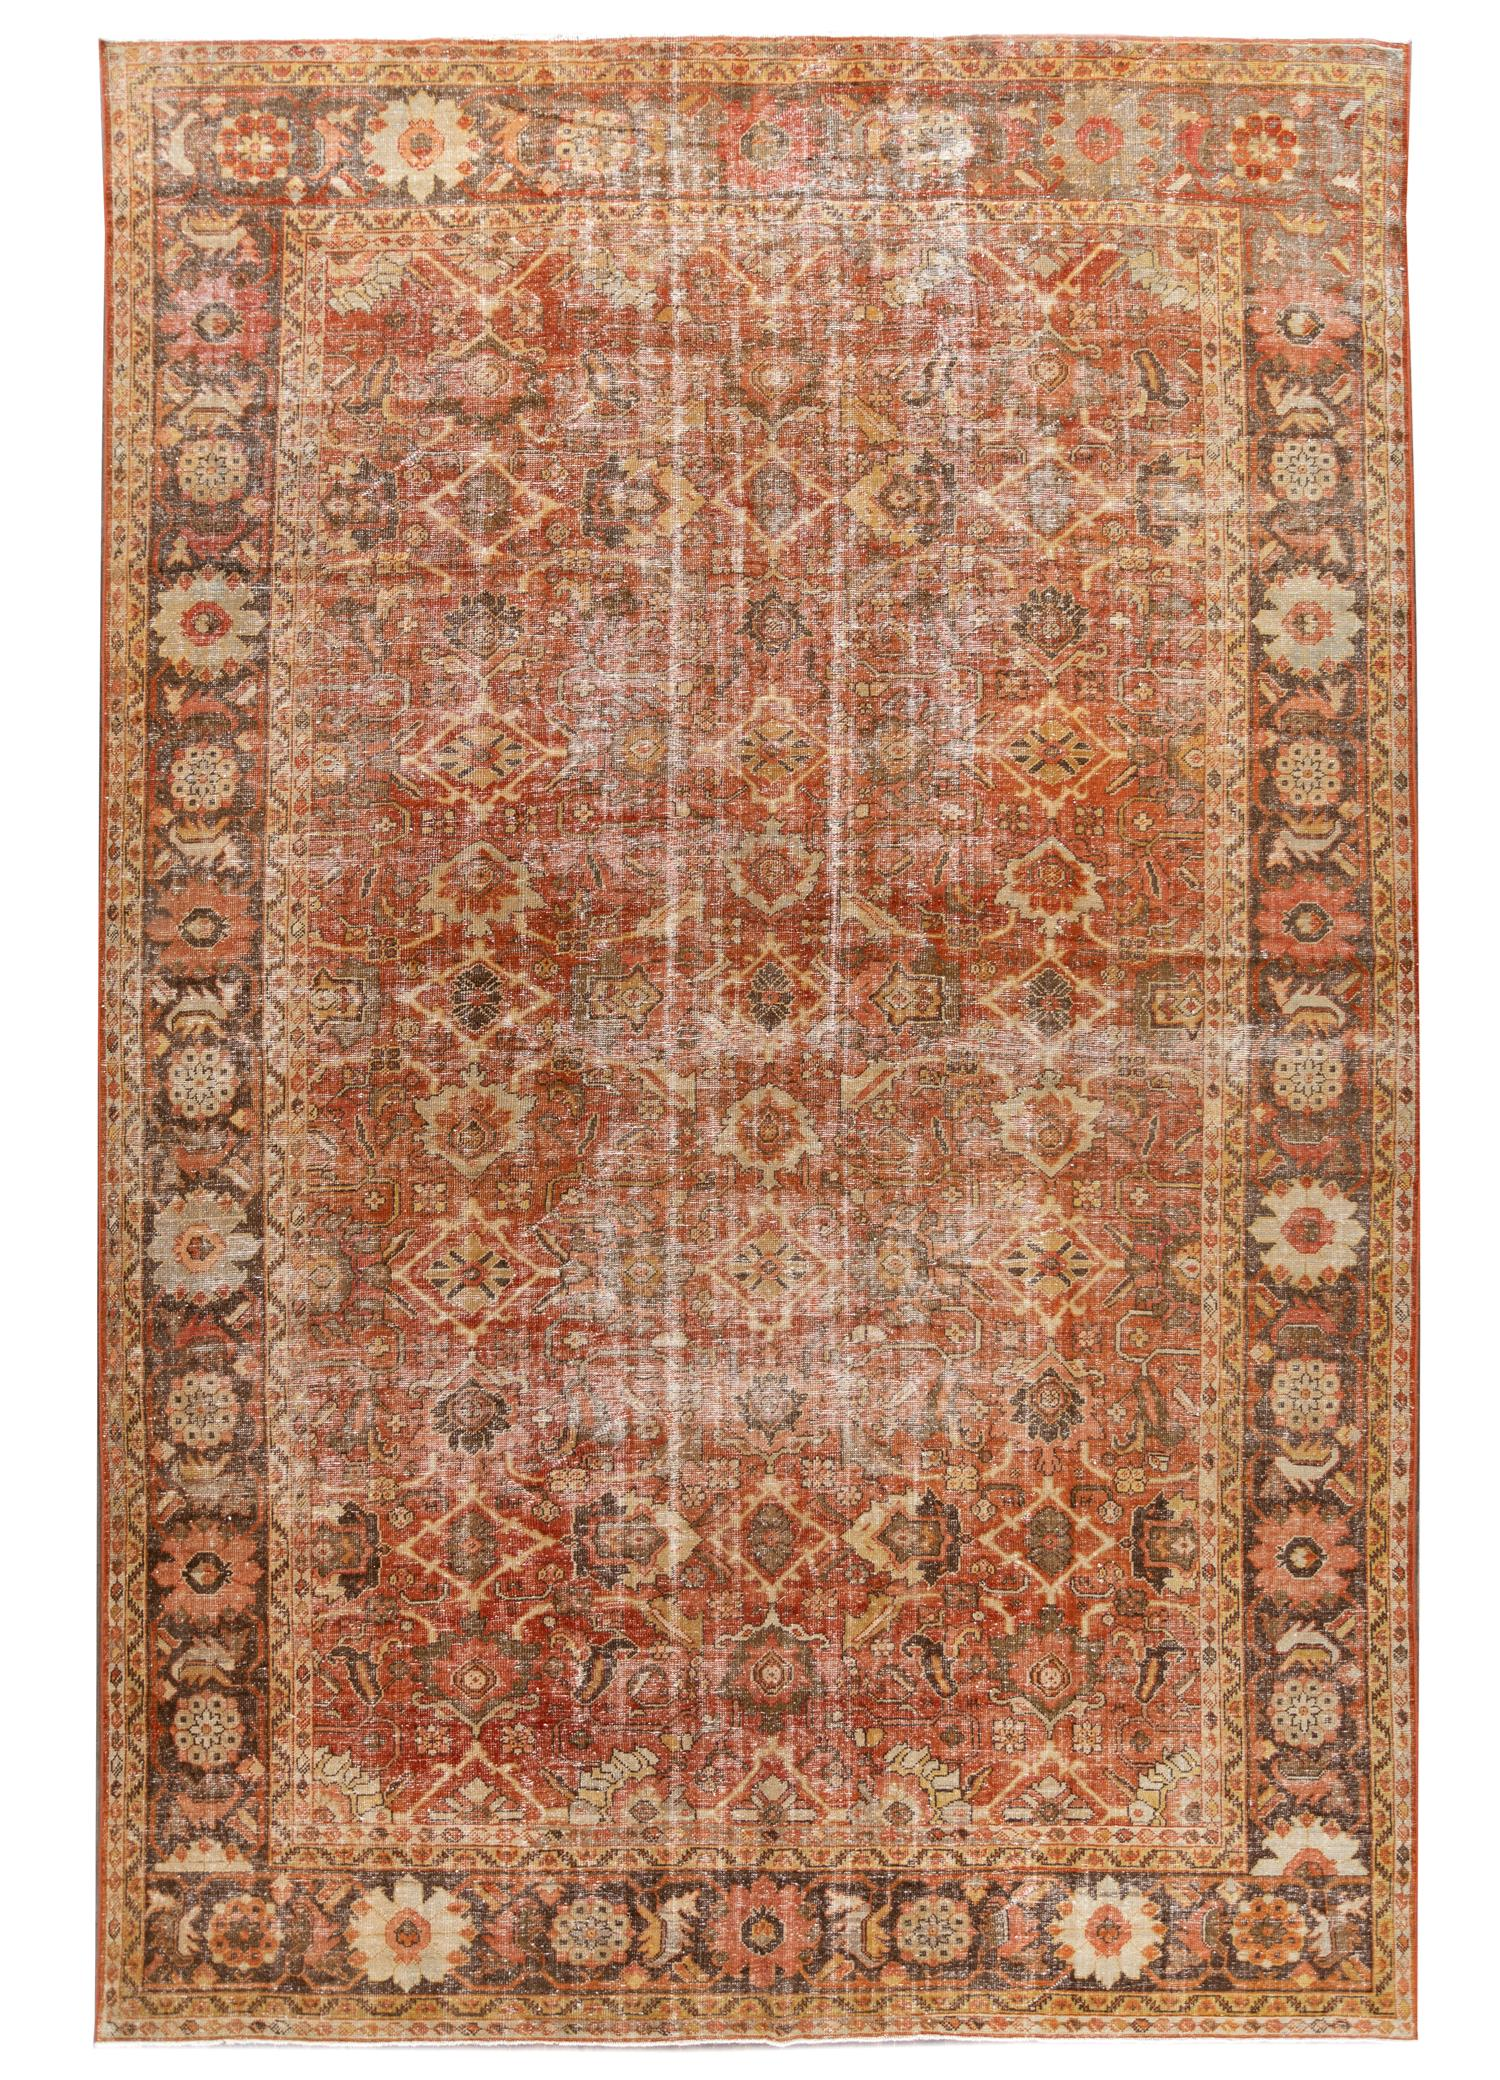 Antique Mahal Rug, #10235249, 11' x 17'